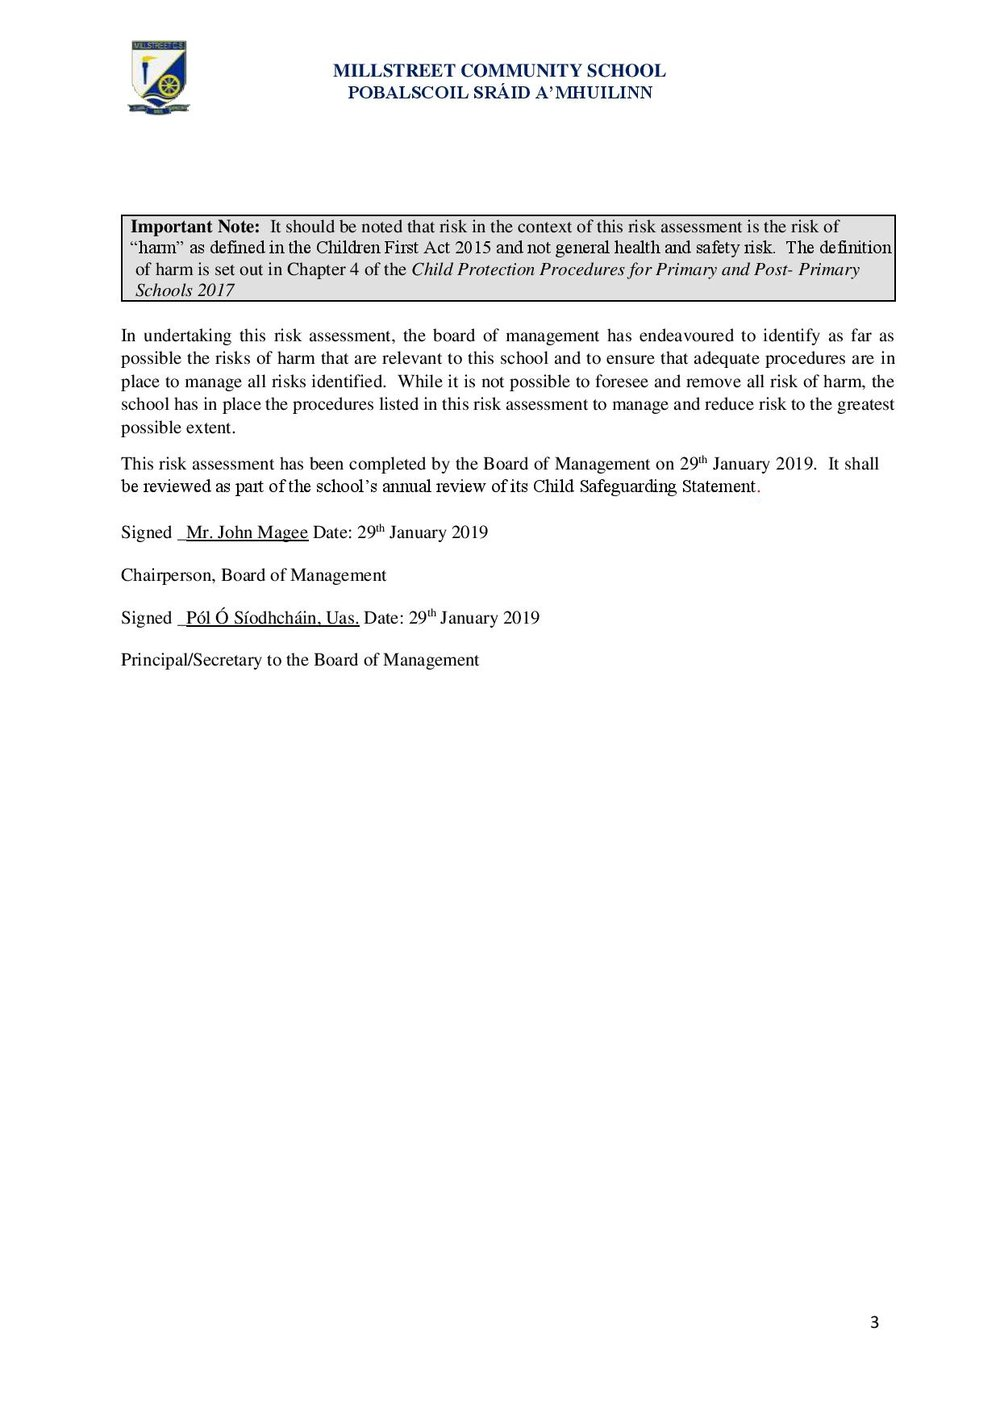 MCS Child Safeguarding Risk Assessment-page-003.jpg